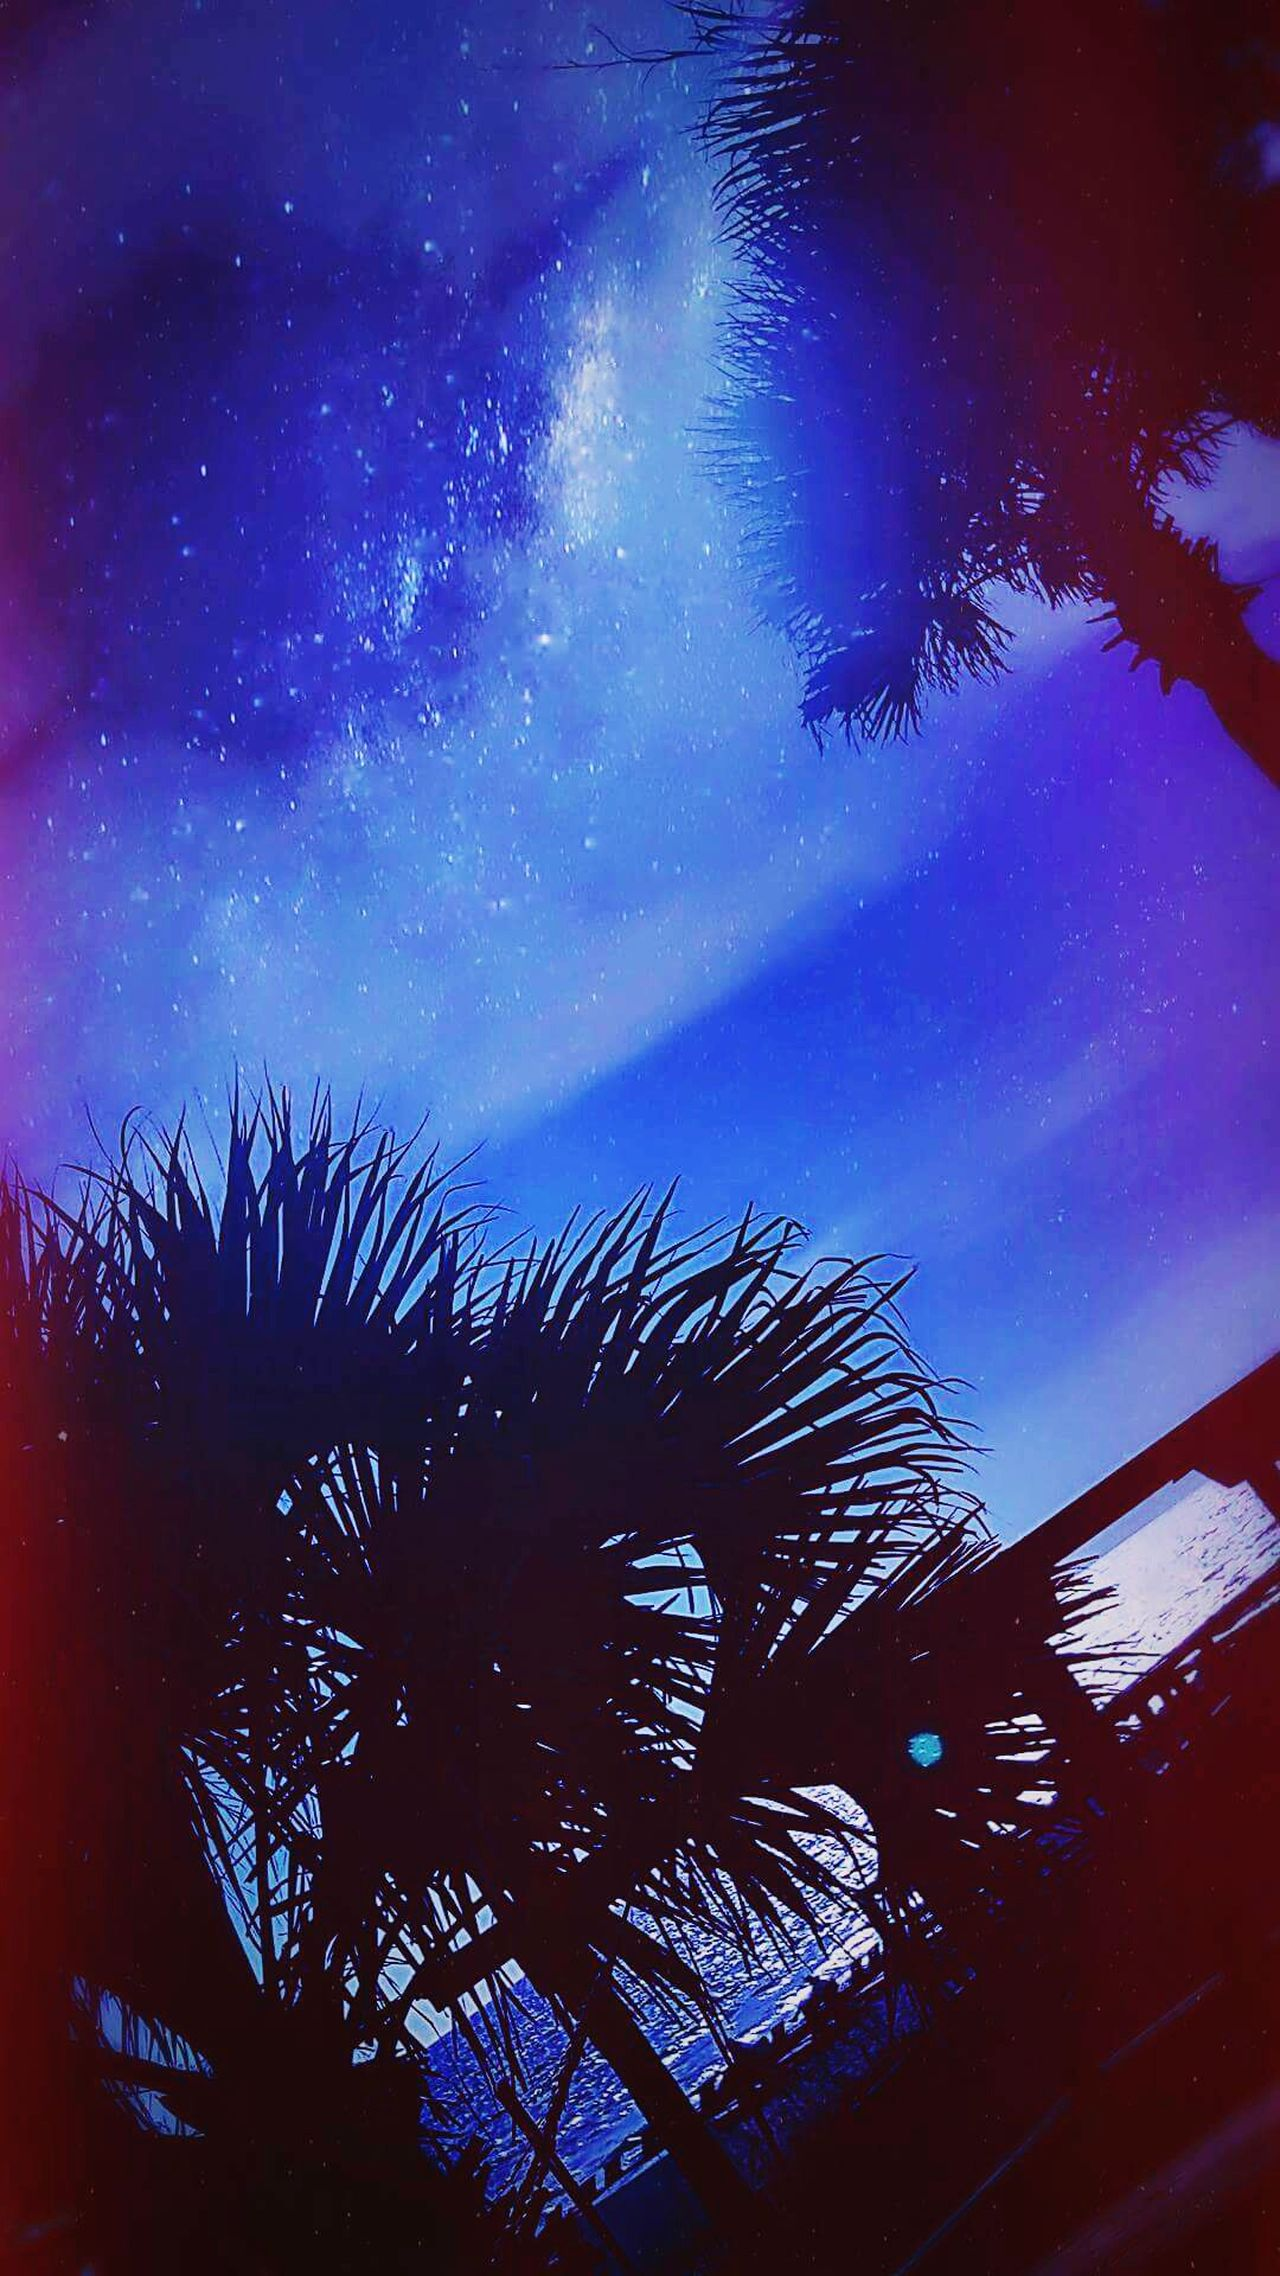 Star - Space Sky Tree Astronomy Night Beauty In Nature Palm Tree No People Tranquility Nature Silhouette Star Trail Scenics Outdoors Galaxy Milky Way Backgrounds Constellation Space